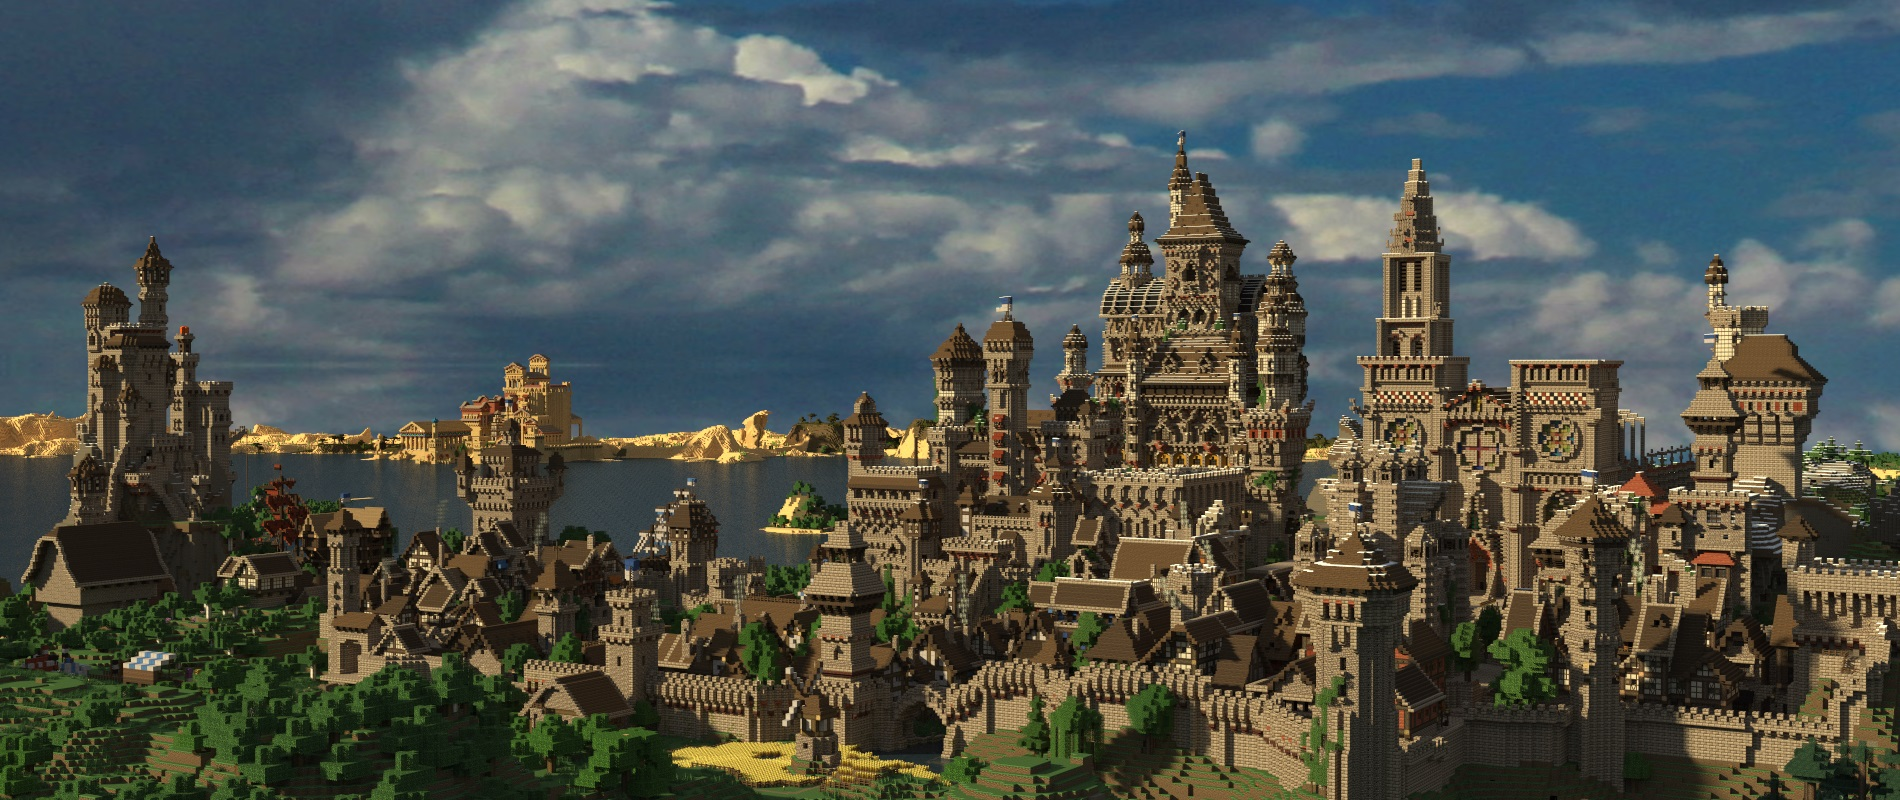 Group of Minecraft City Wallpaper With